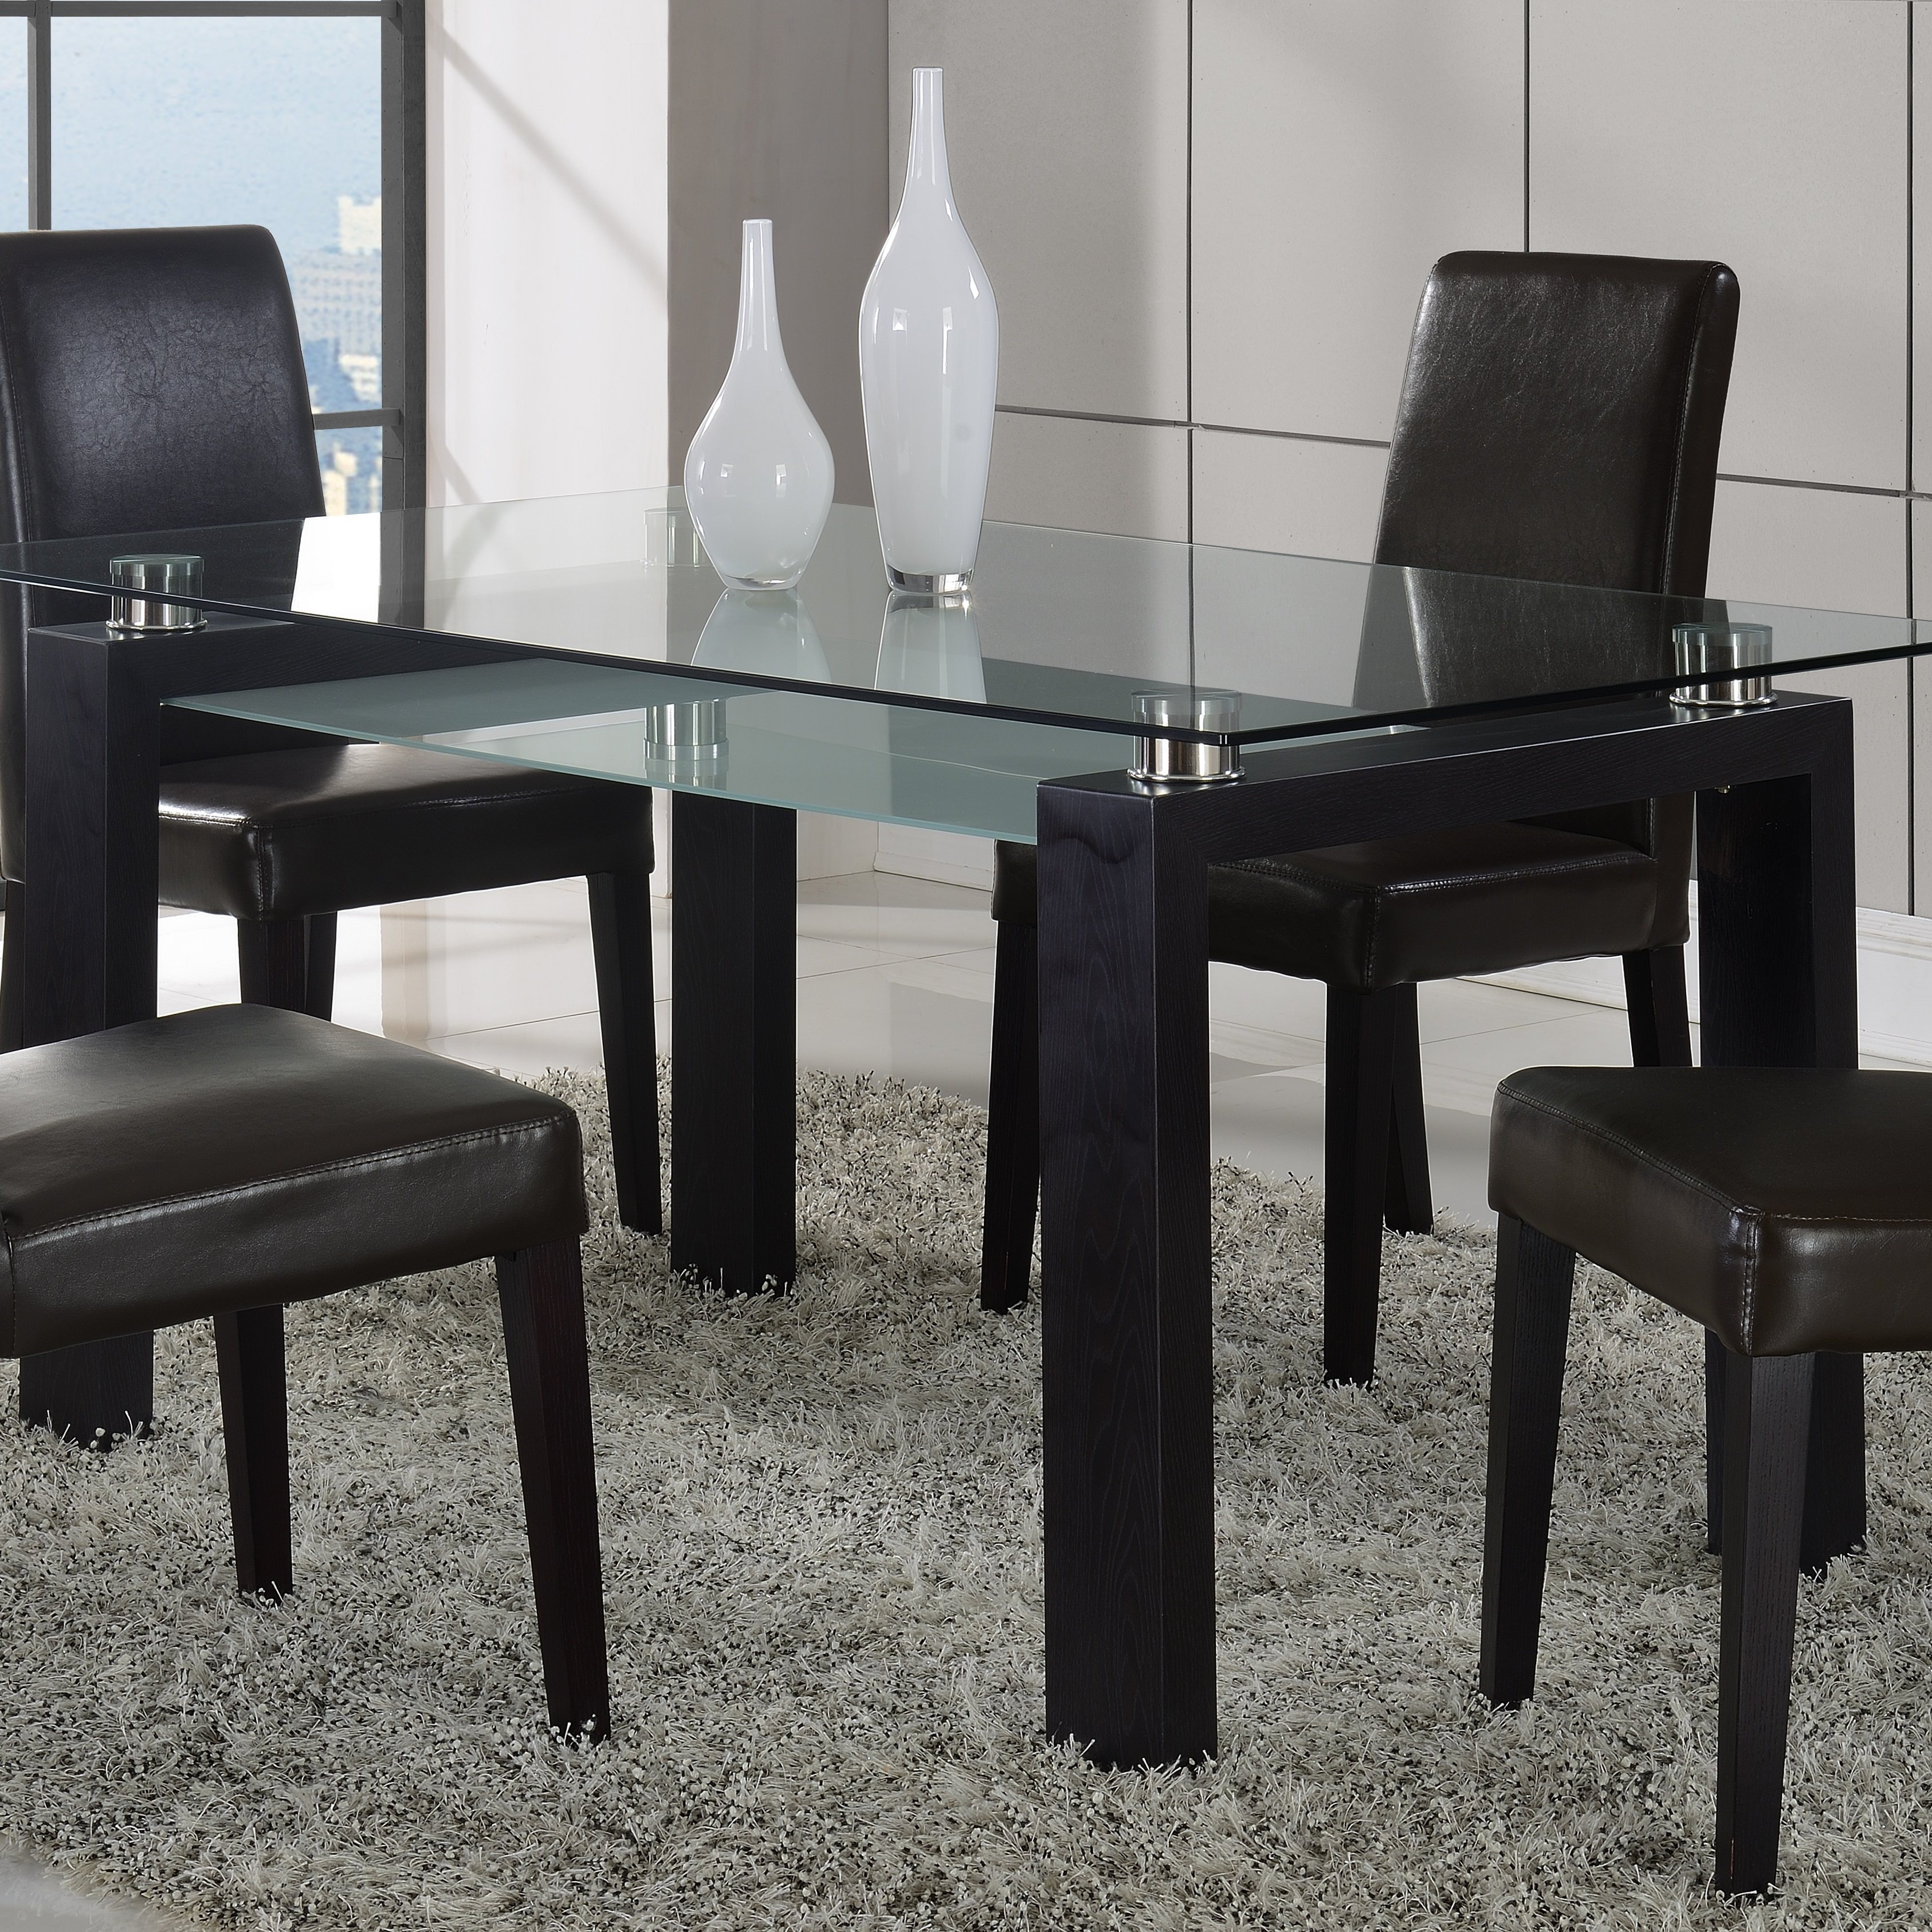 Global Furniture Usa Black Walnut Glass-top Dining Table